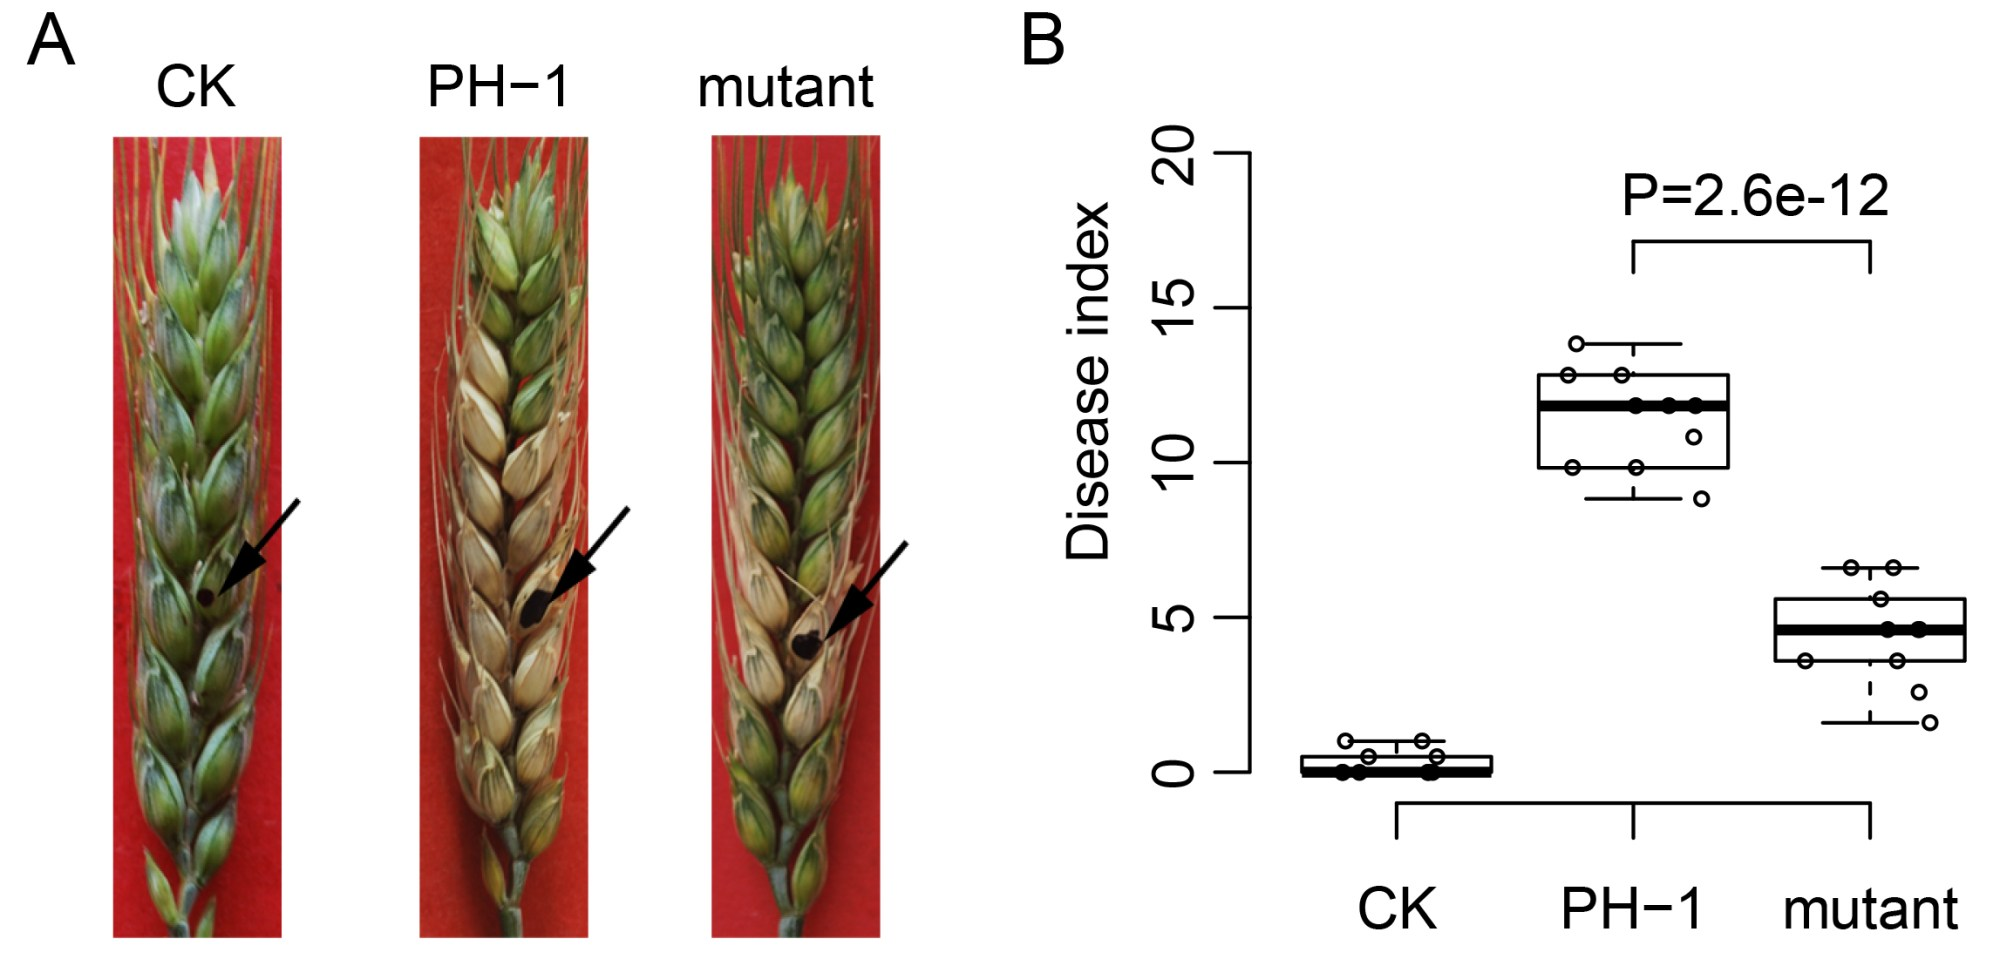 hight resolution of disease symptom and statistical analysis of wheat head infection assay a flowering wheat heads were drop inoculated with water ck or conidia of the wild